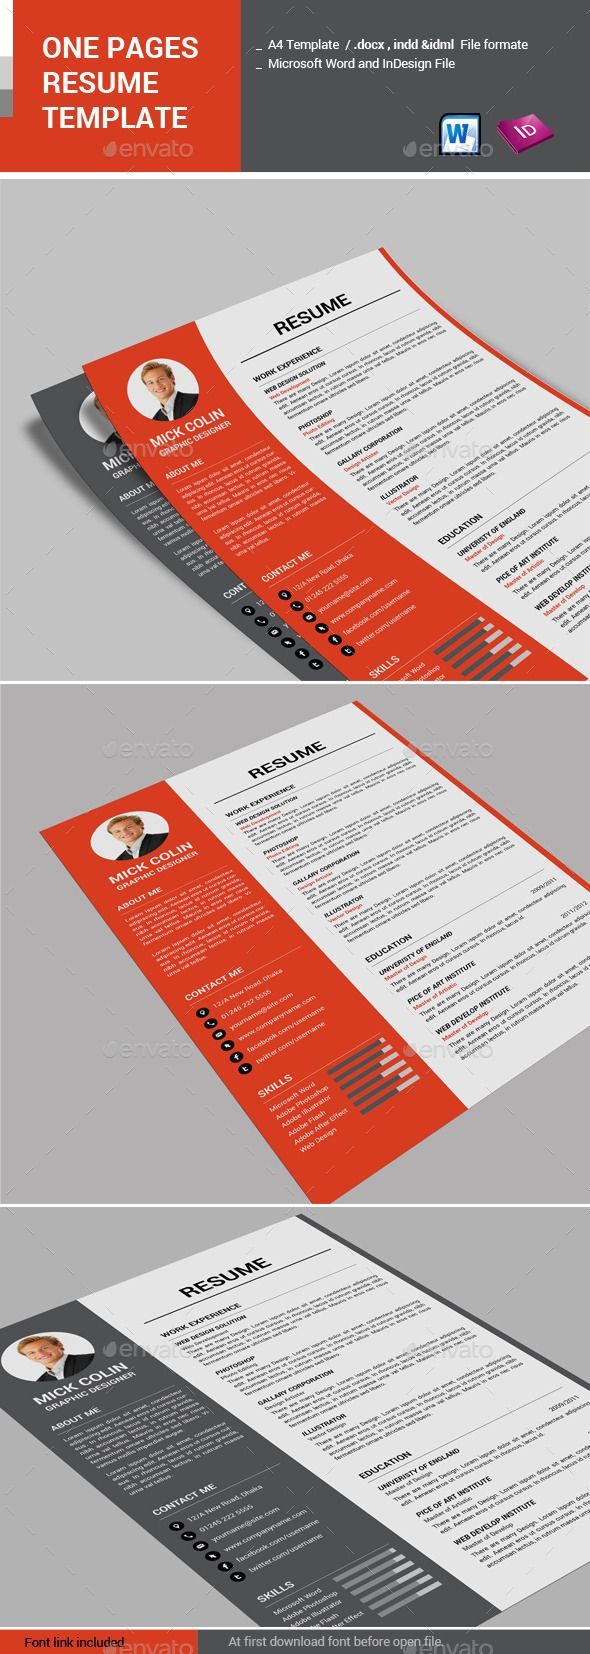 military resume format%0A One Pages Resume Template